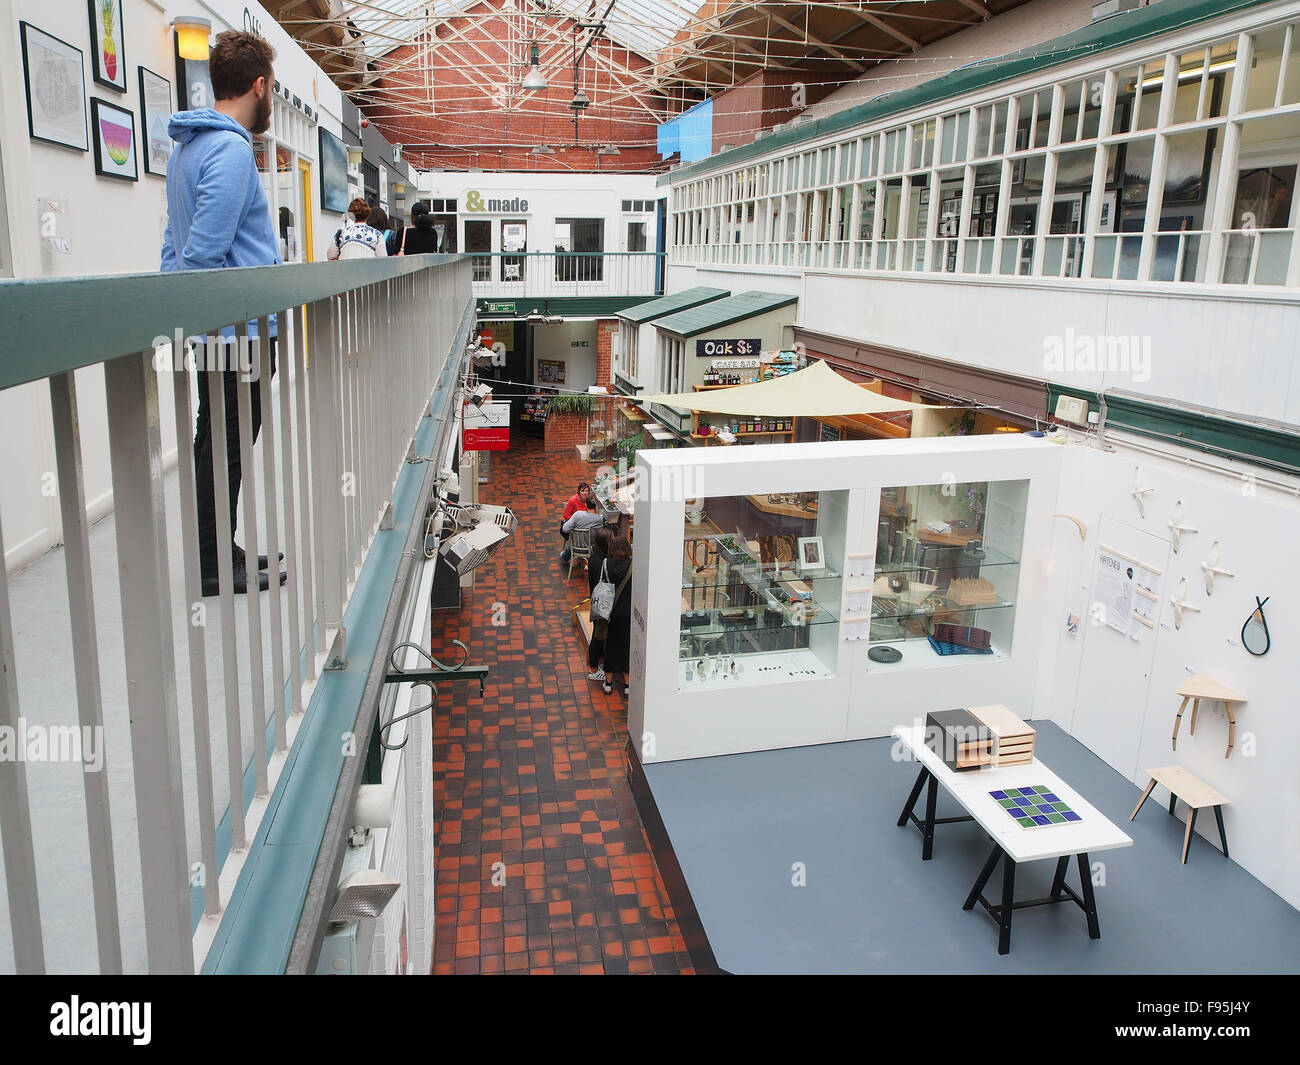 Interior of the Manchester Crafts and Design Centre on Oak Street, in the Norther Quarter of Manchester, UK. Stock Photo